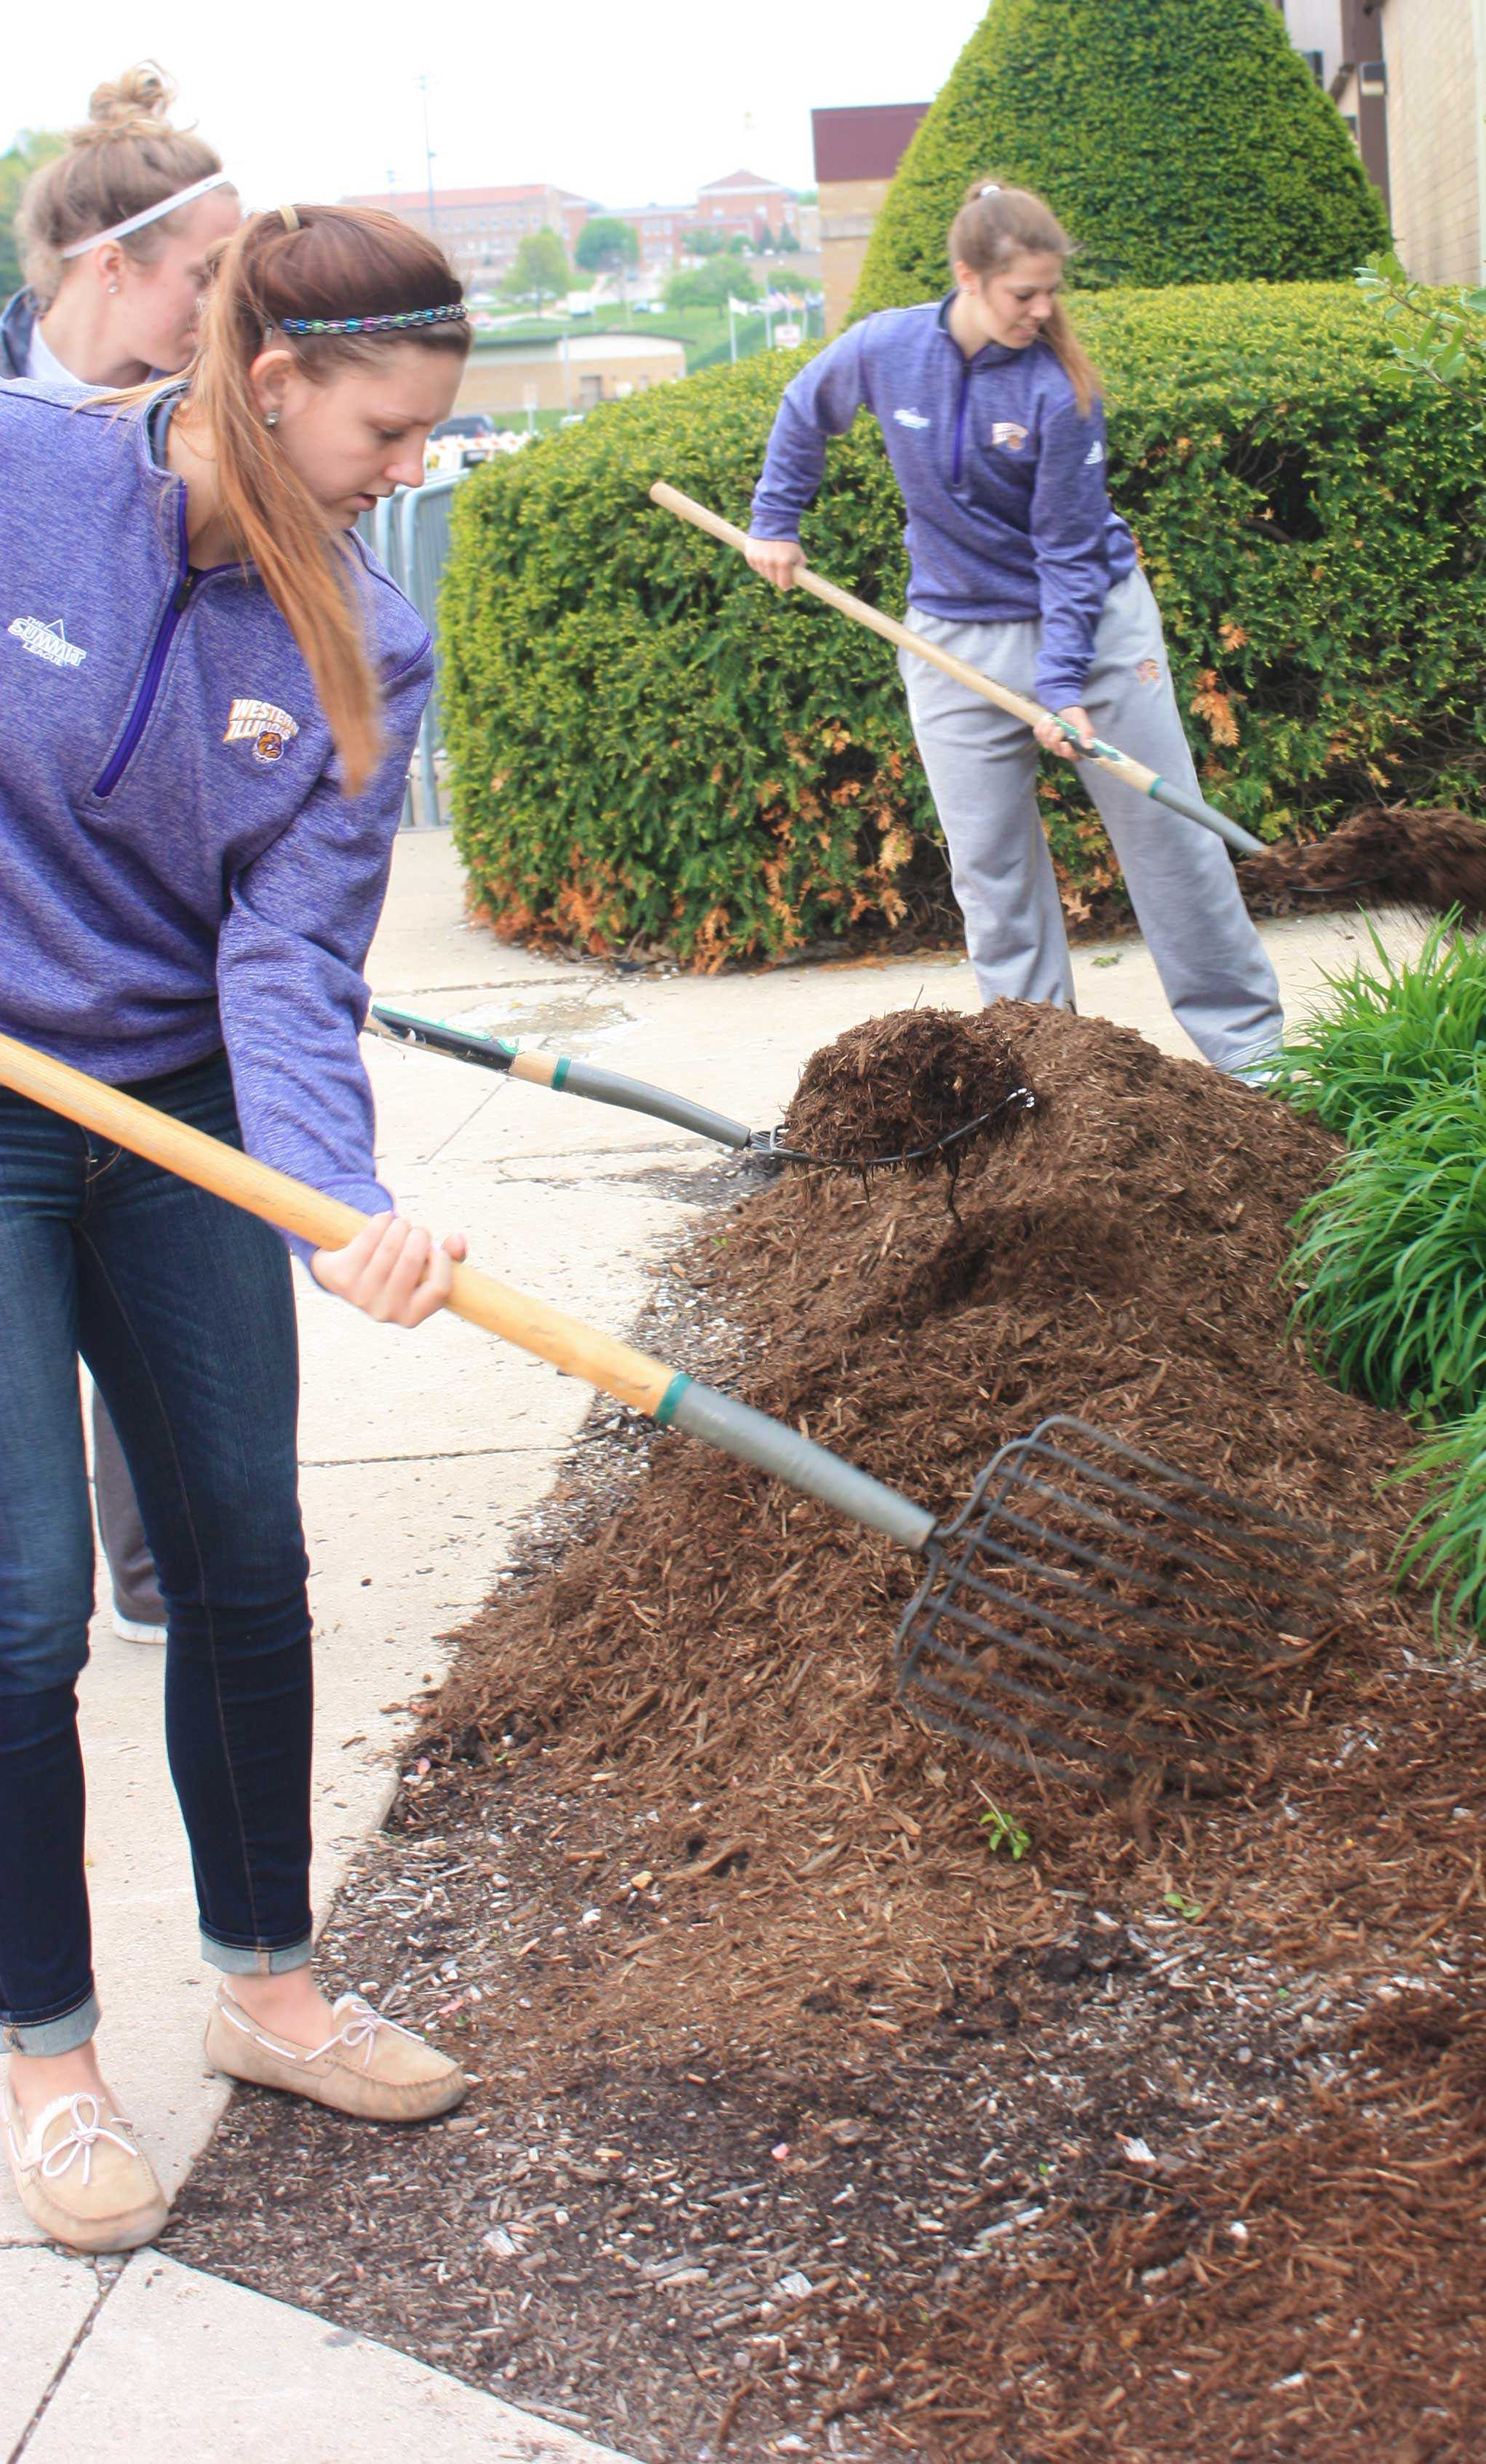 jasmyne taylor/courier staff On Friday, students celebrate Arbor Day with the assistance of Facilities Management staff by planting trees in the spring We Care event.